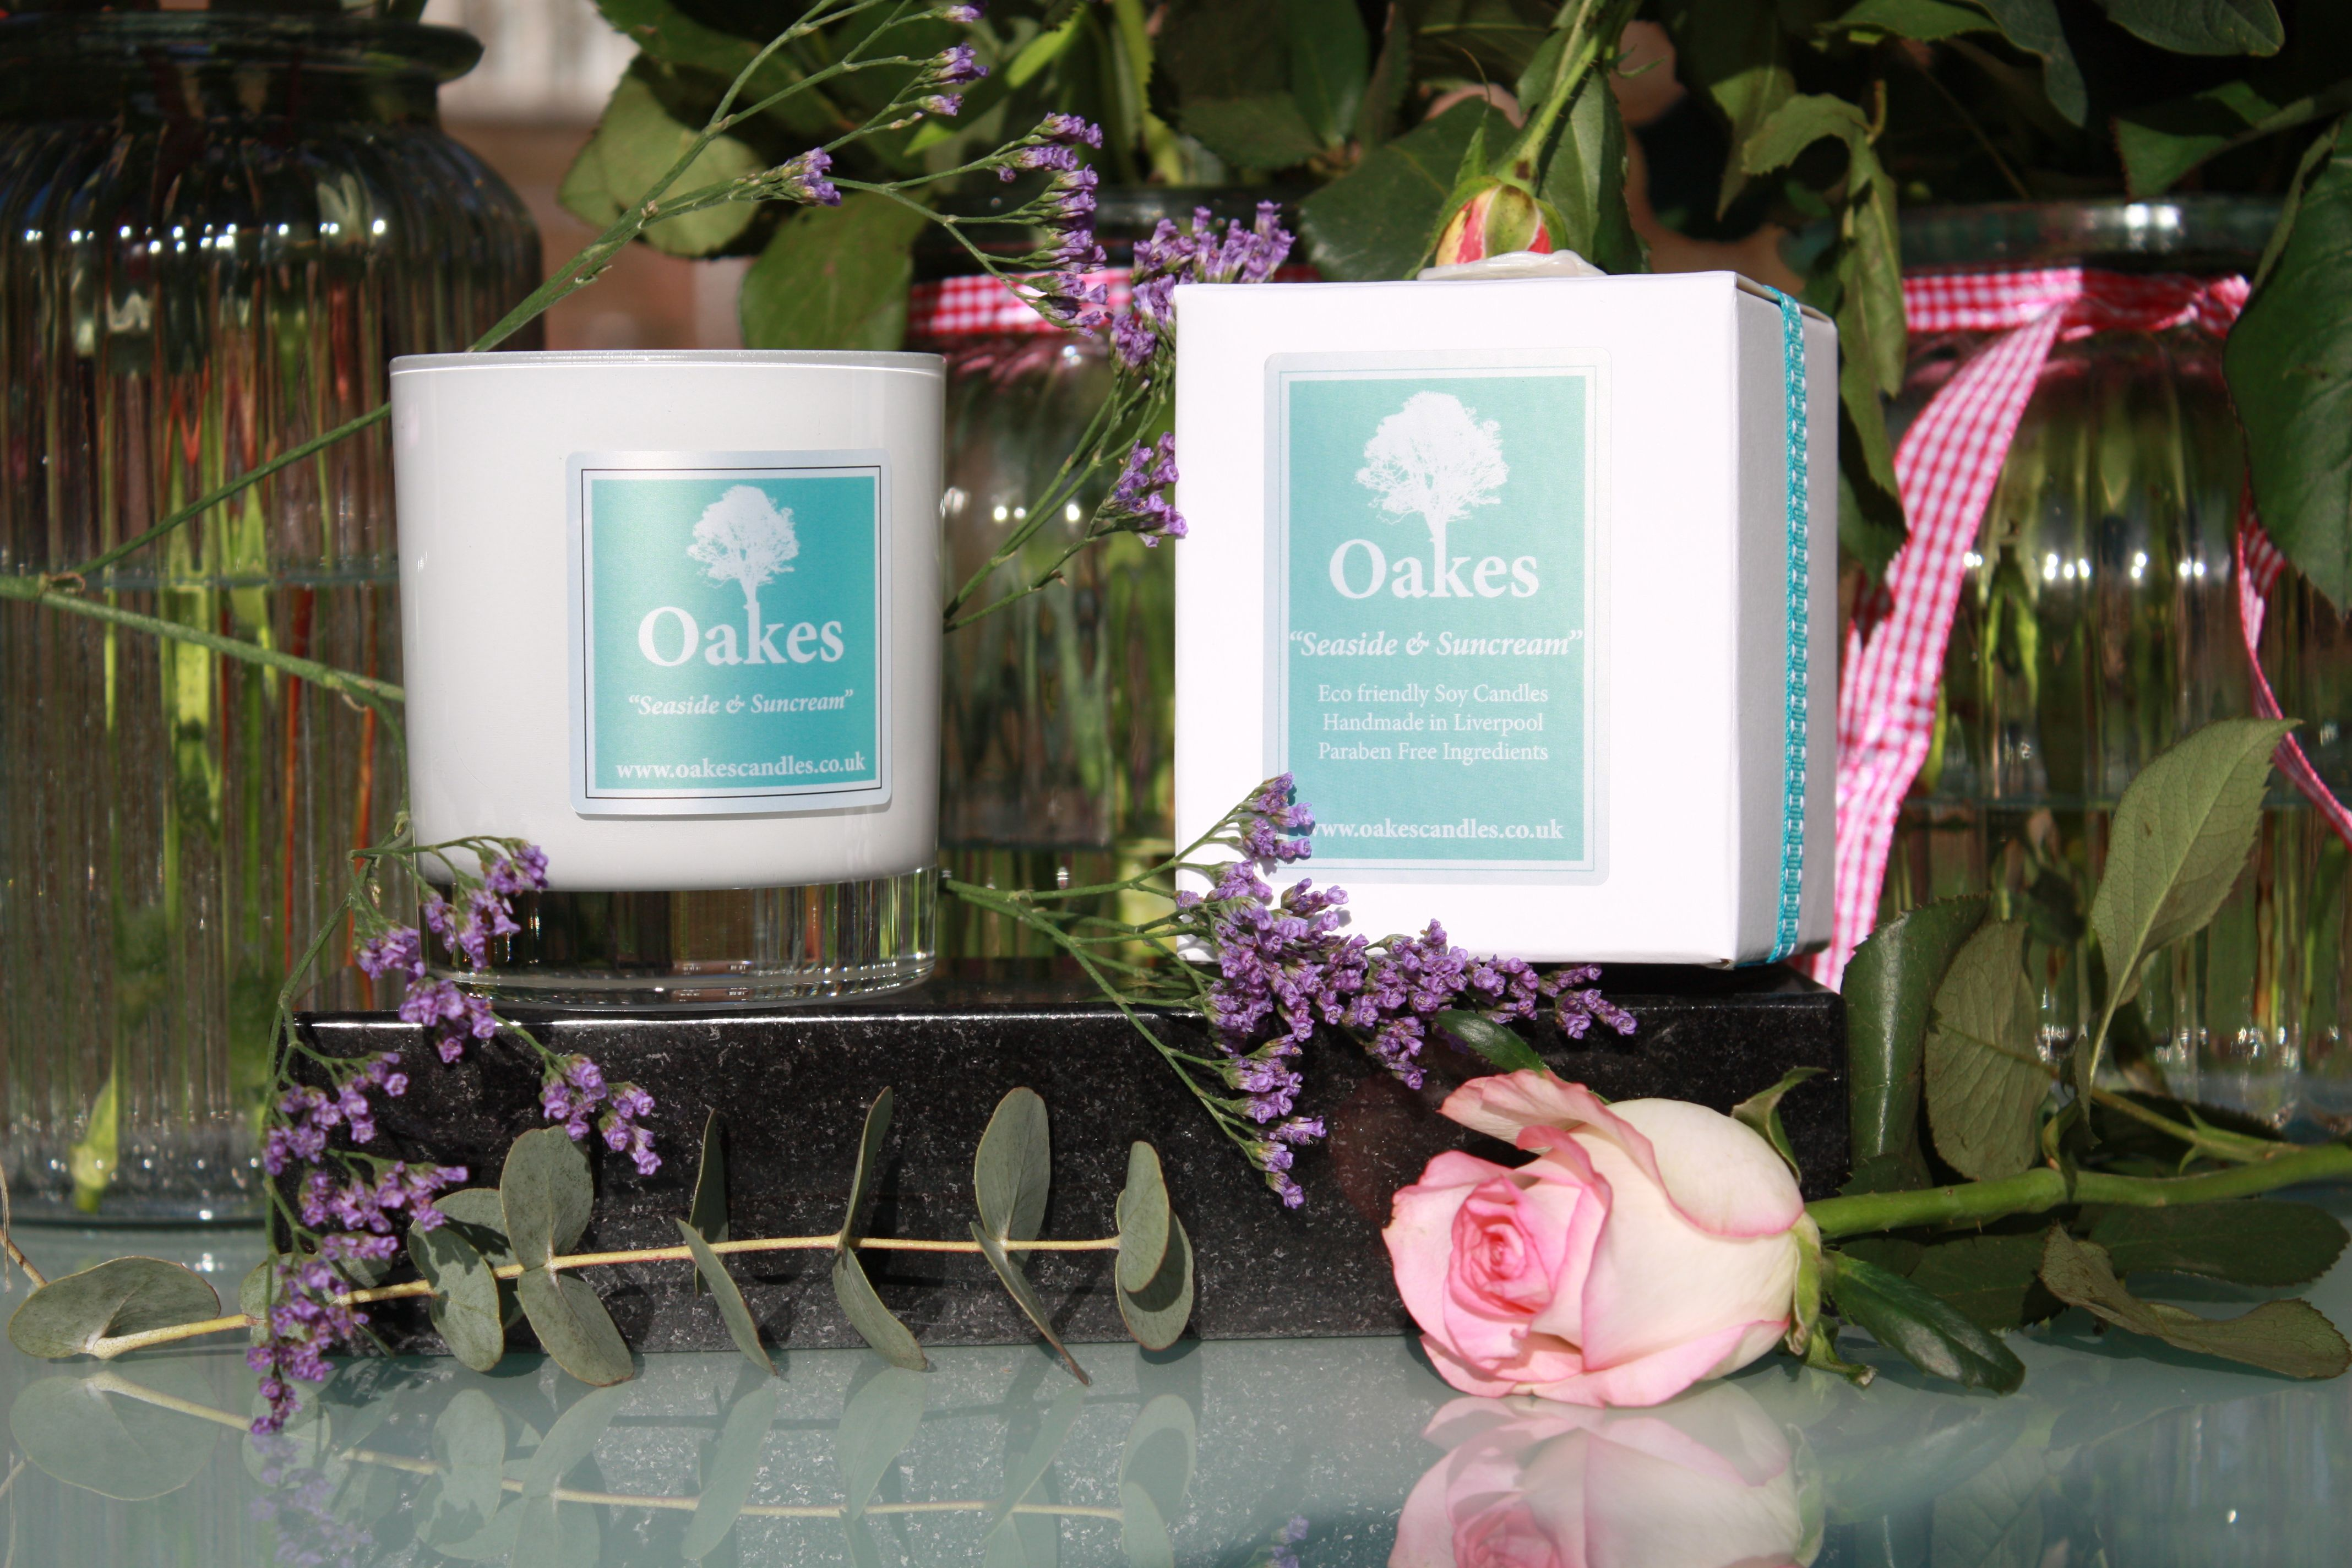 """Oakes Candles """"Seaside & Suncream"""" Shop for this candles, click the link below!"""